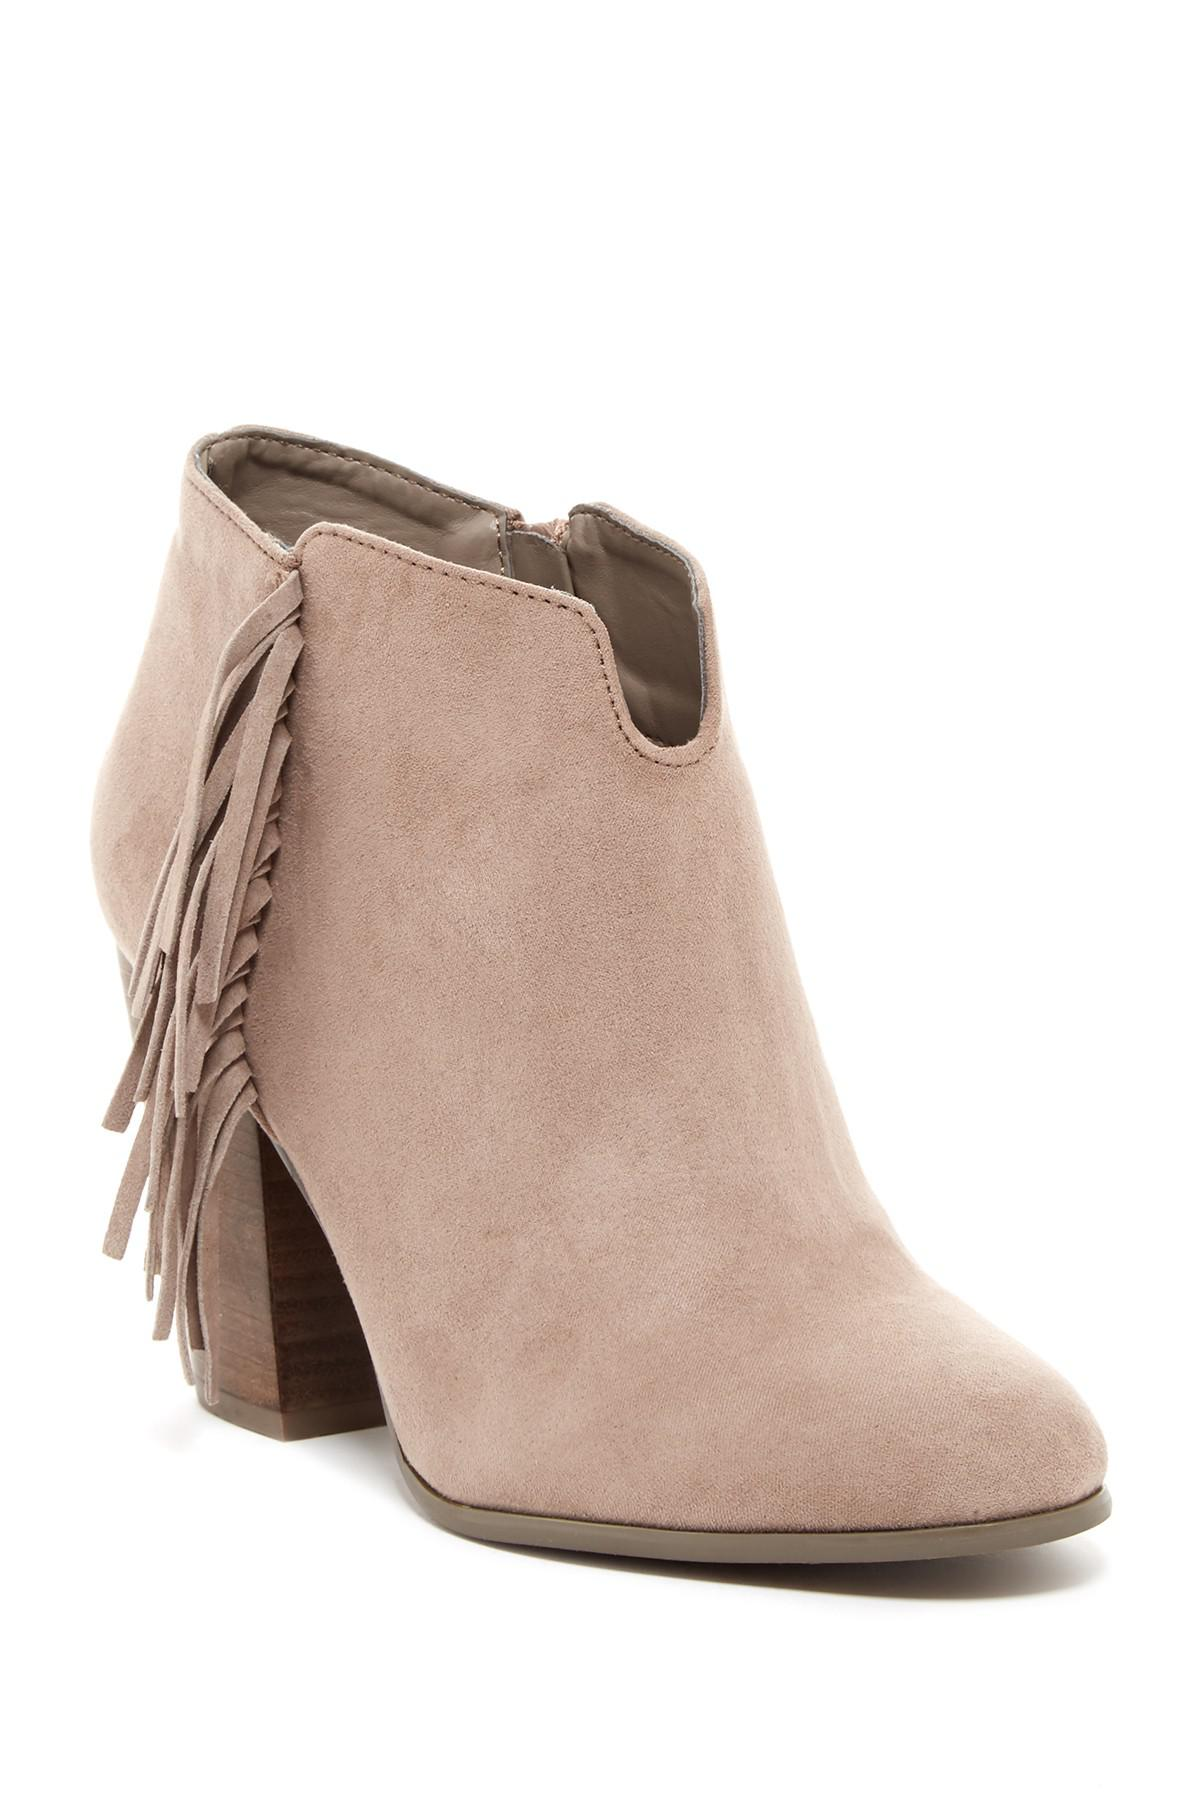 3d8fd238bcb Lyst - Carlos By Carlos Santana Tempe Ankle Bootie in Natural